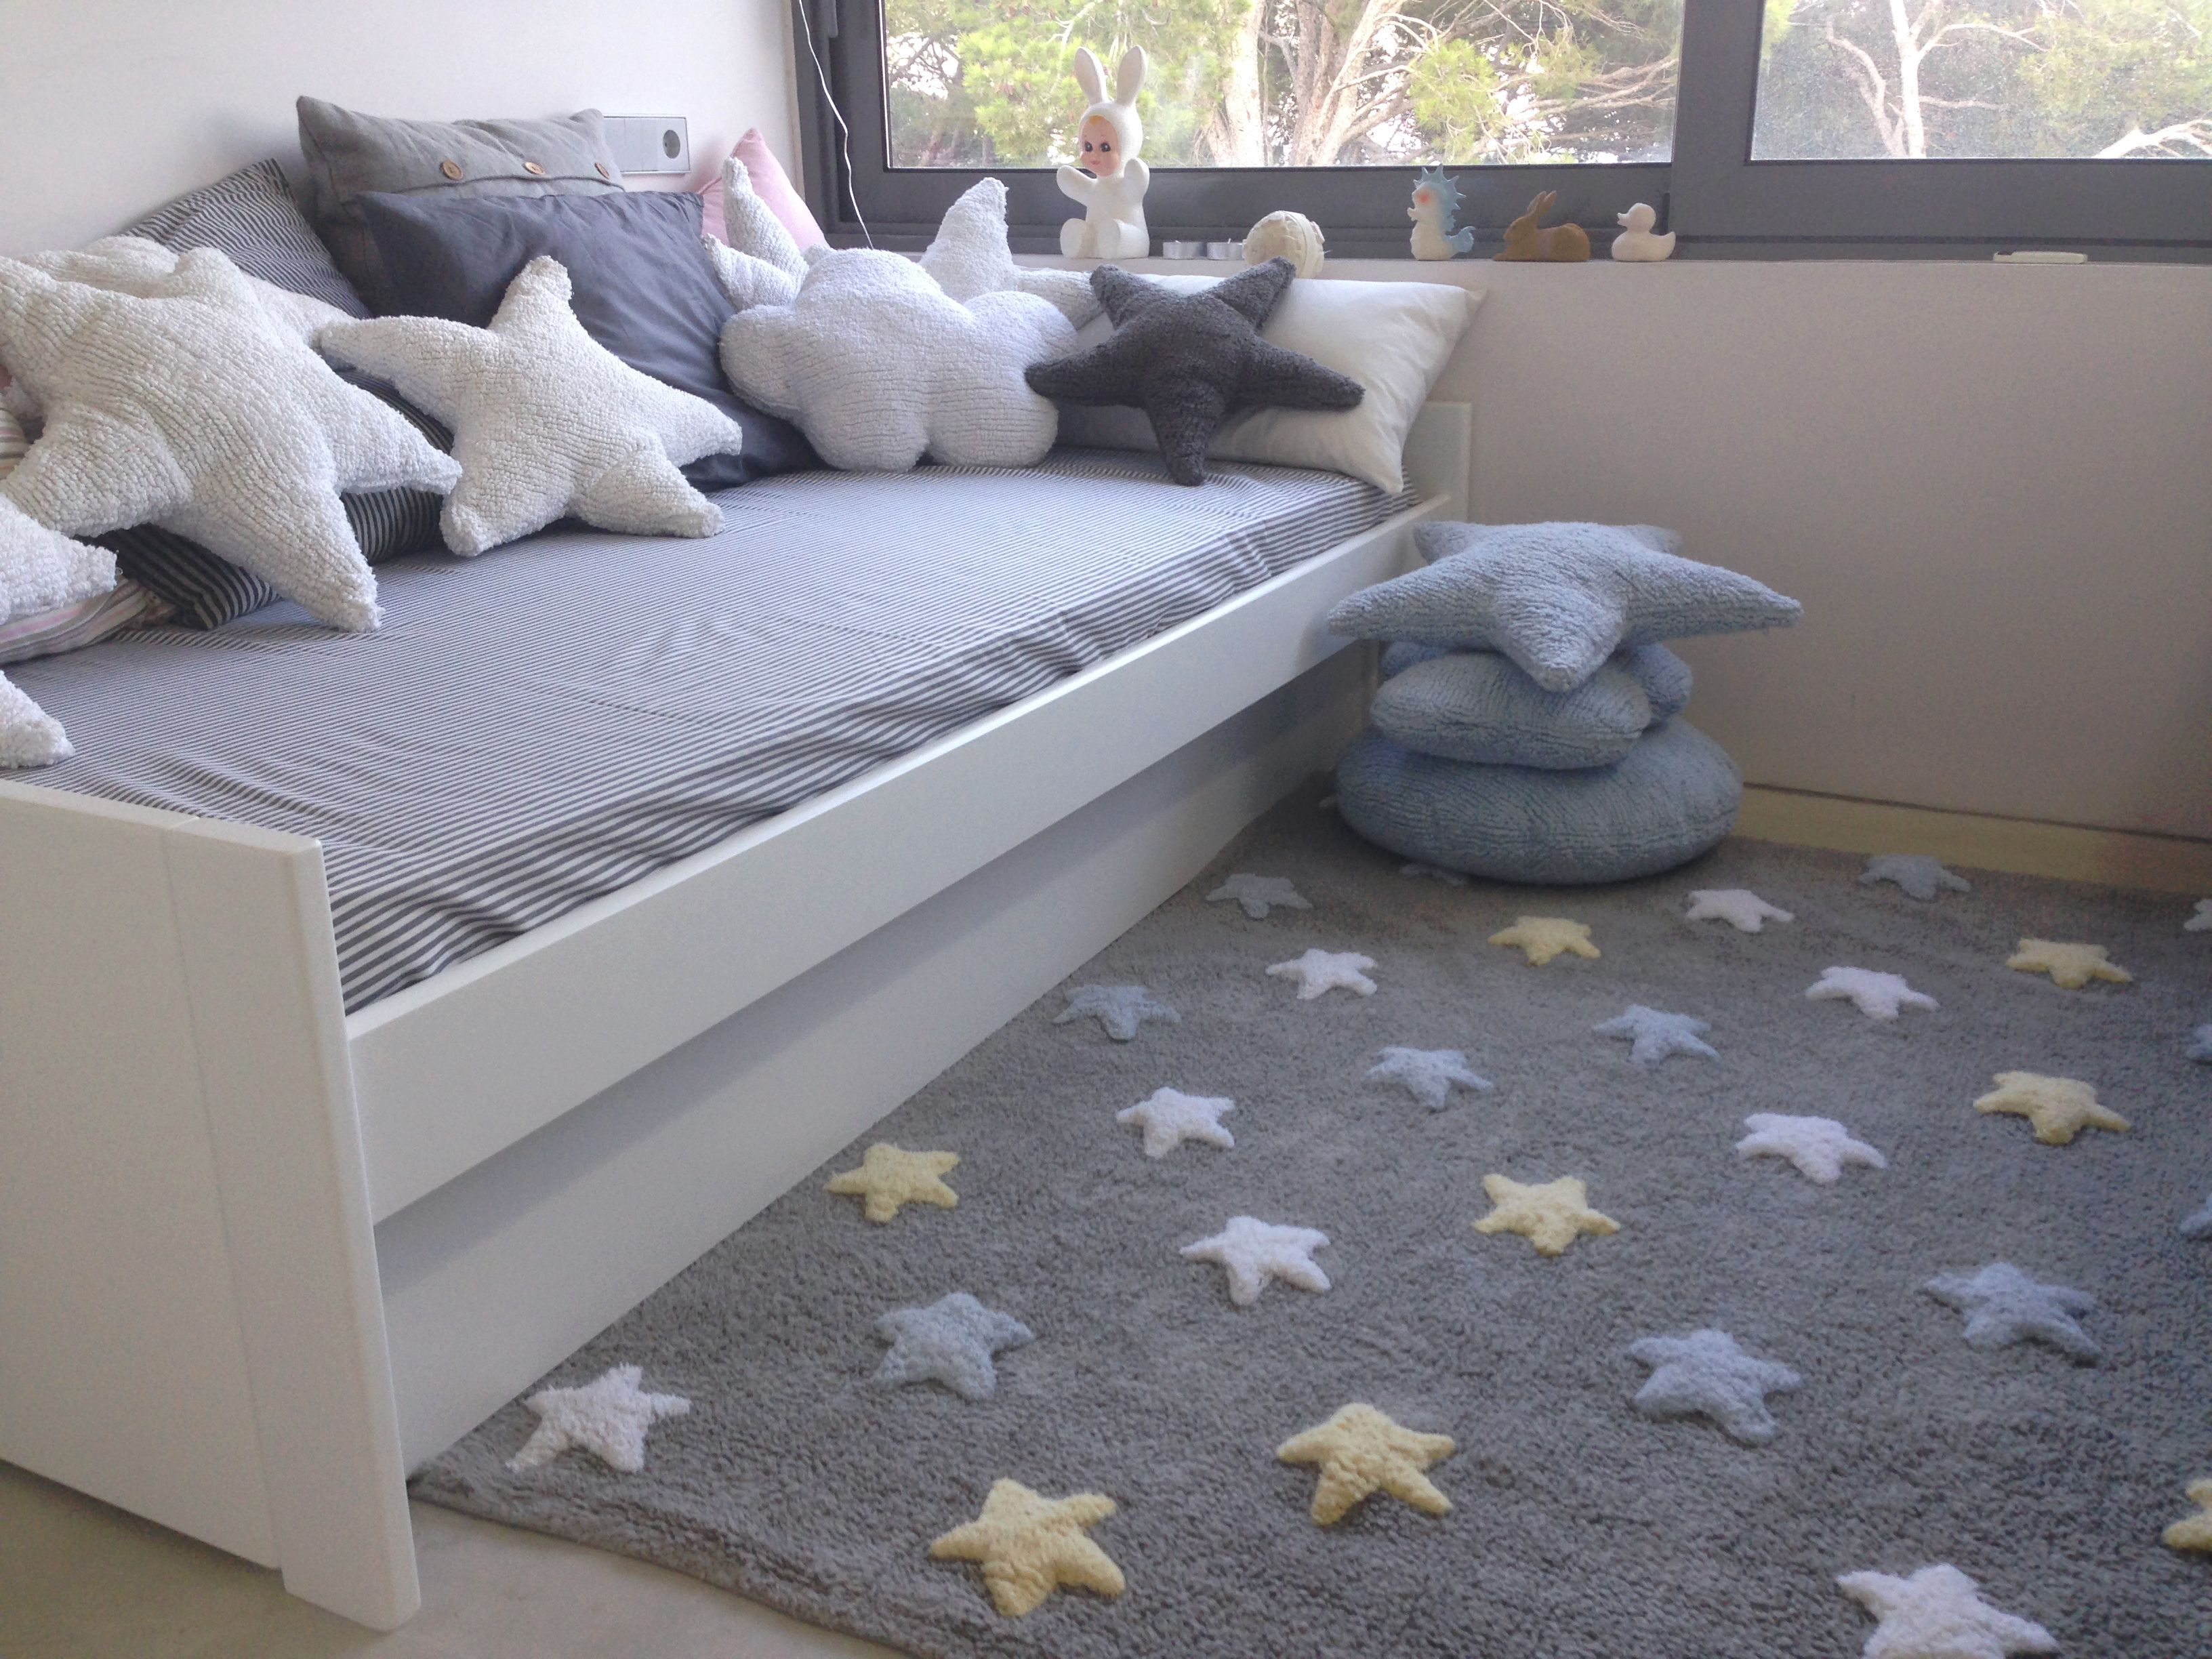 Washable cushions star / Cojines lavables estrella Lorena Canals ...